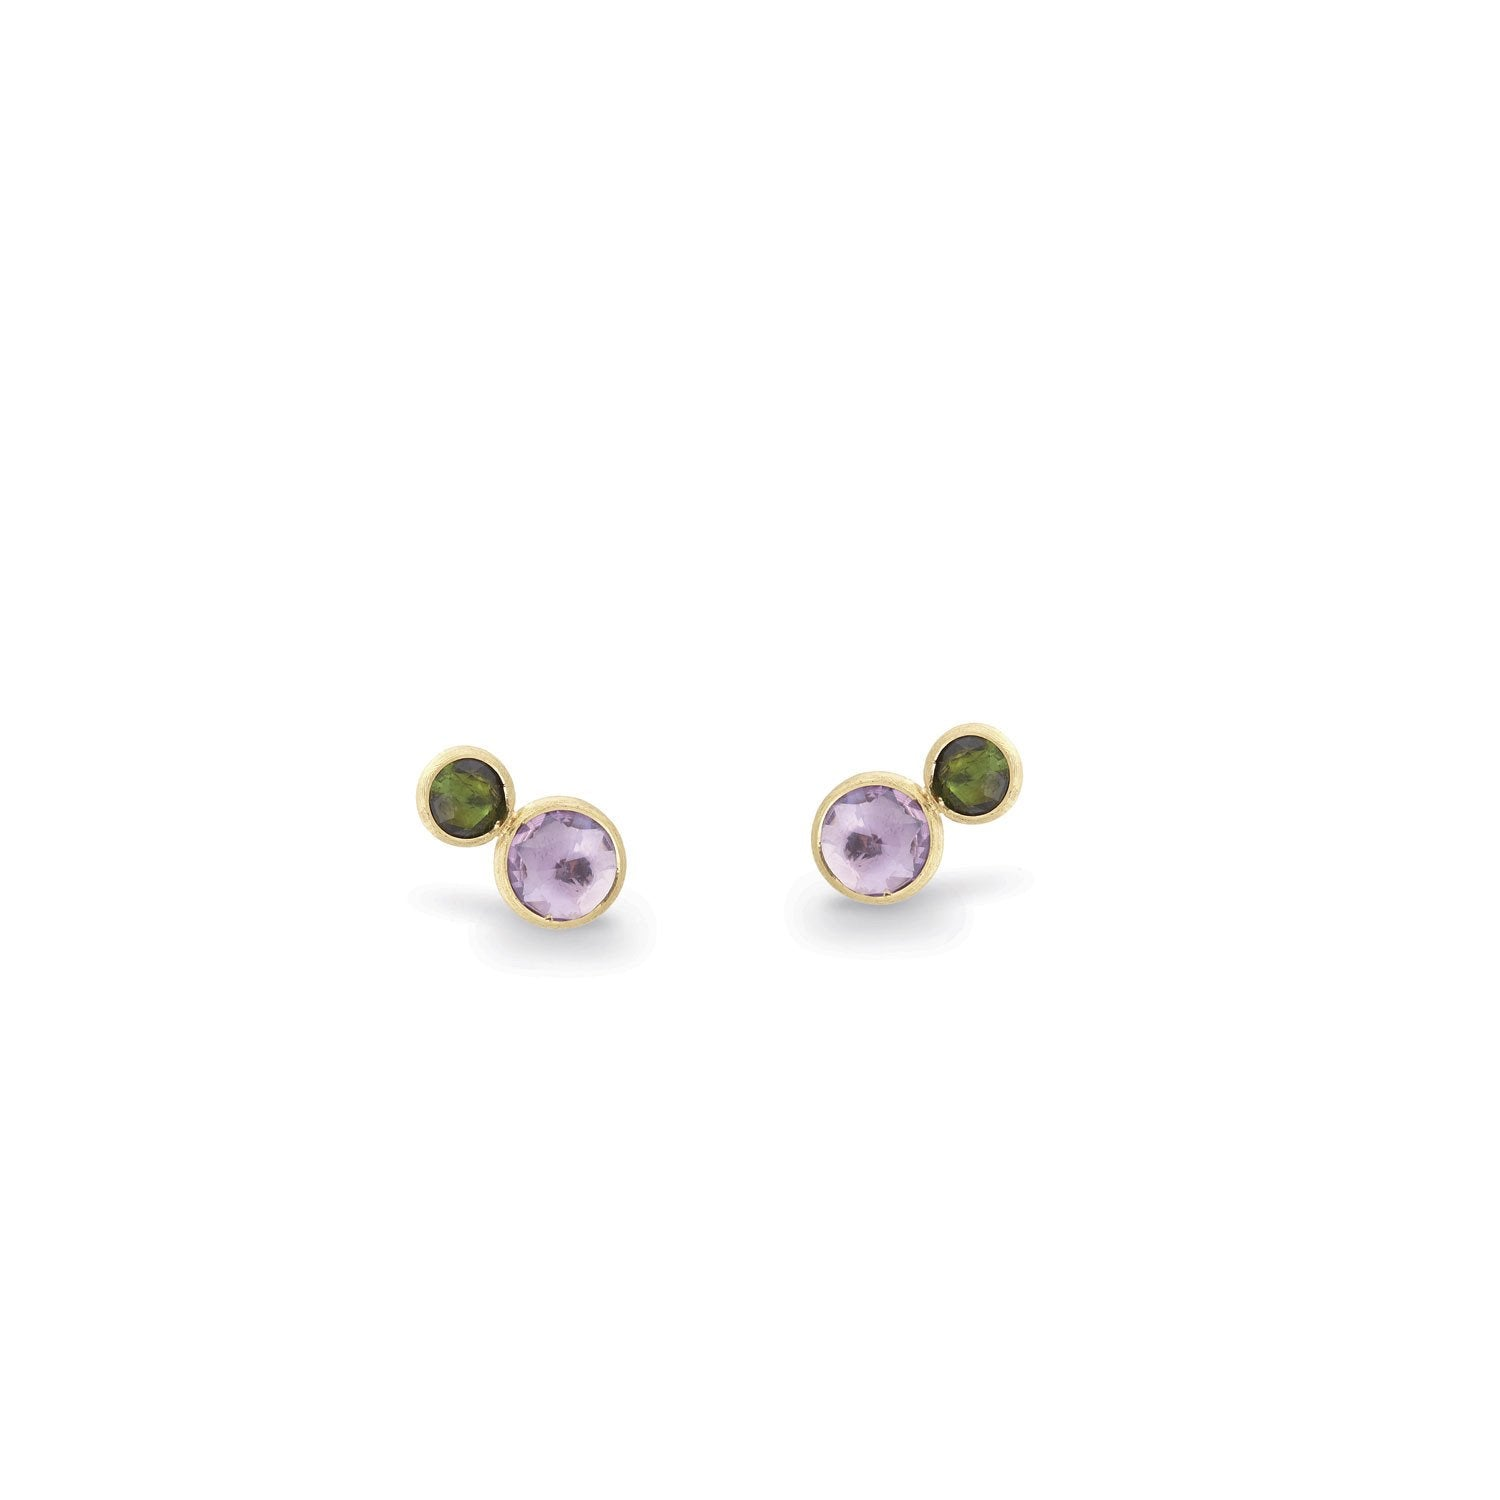 Jaipur 18K Yellow Gold Amethyst and Green Tourmaline Stud Earrings